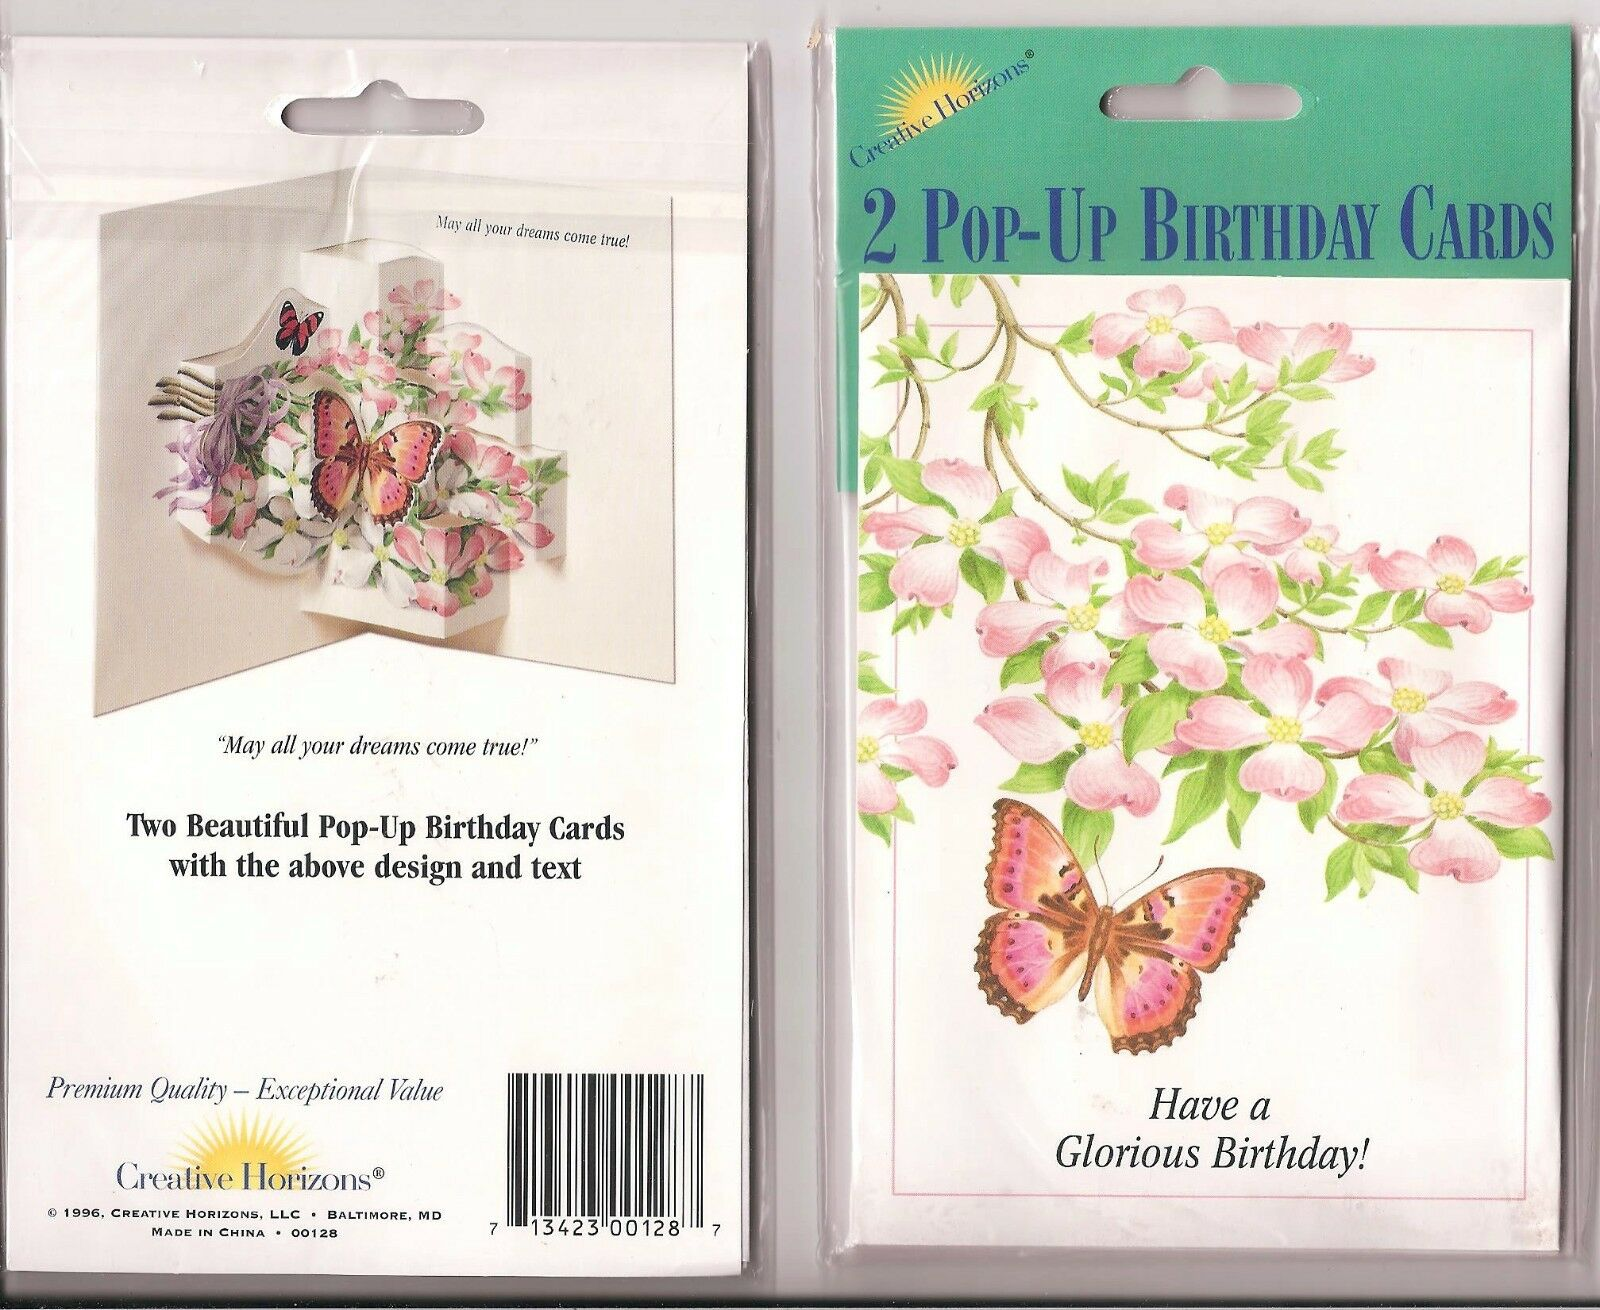 2 creative horizons old fashioned pop up birthday cards flowers picture 1 of 1 izmirmasajfo Choice Image